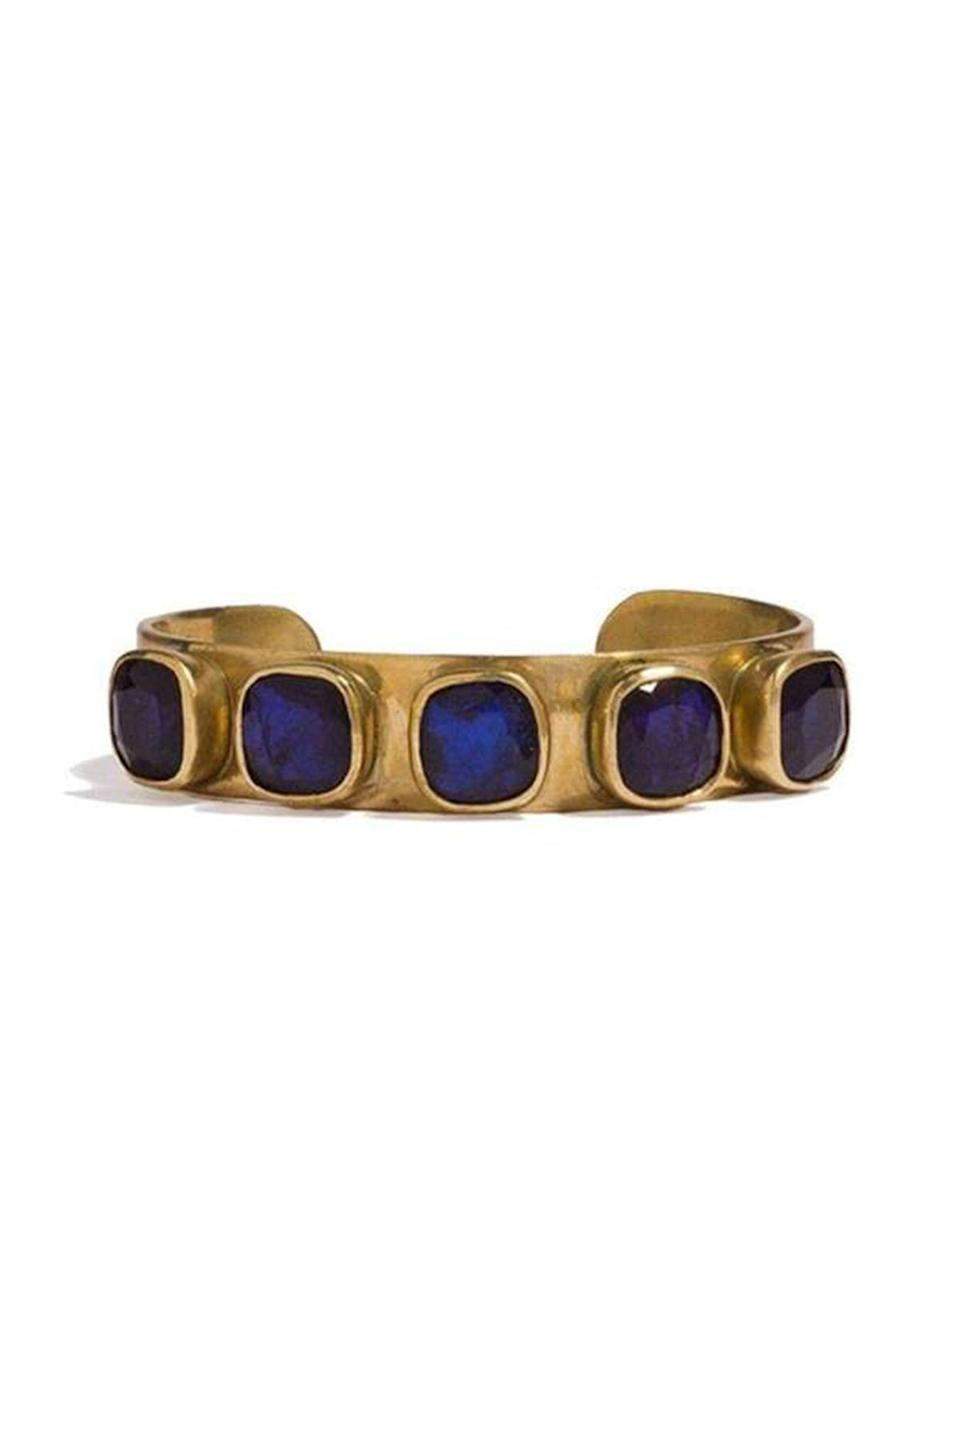 """<p><strong>Adore Adorn</strong></p><p>adore-adorn.com</p><p><strong>$245.00</strong></p><p><a href=""""https://adore-adorn.com/collections/bracelets/products/jane-bracelet-brass?variant=4878405926947"""" rel=""""nofollow noopener"""" target=""""_blank"""" data-ylk=""""slk:Shop Now"""" class=""""link rapid-noclick-resp"""">Shop Now</a></p><p>Adore Adorn's Jane bracelet is the perfect combo: chunky enough to stand out, but versatile enough to wear every day.</p>"""